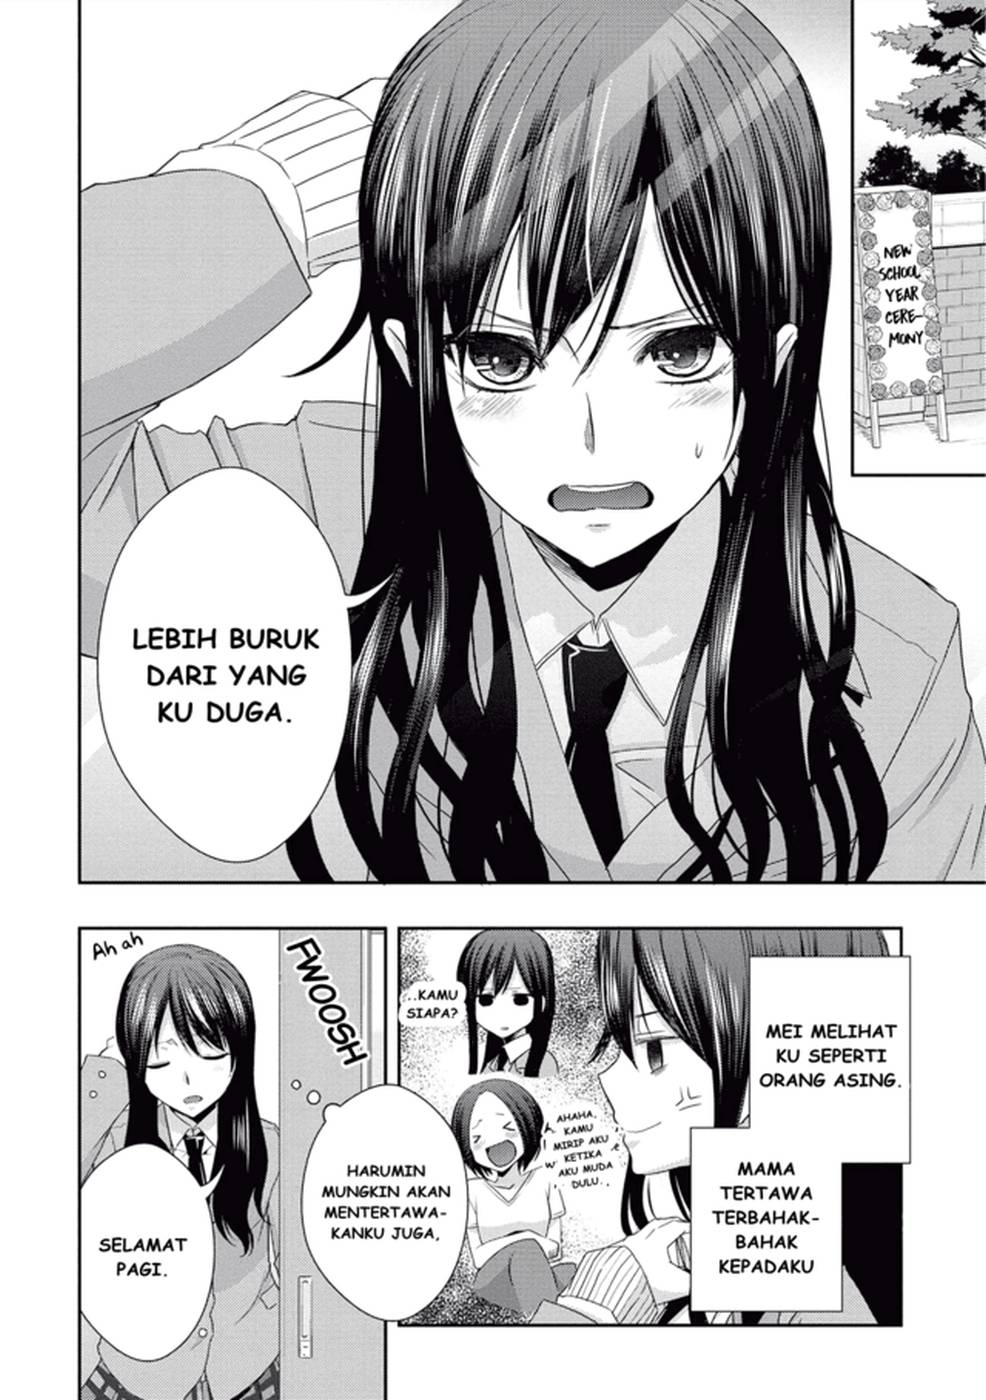 Baca Manga Citrus Chapter 17 Bahasa Indonesia